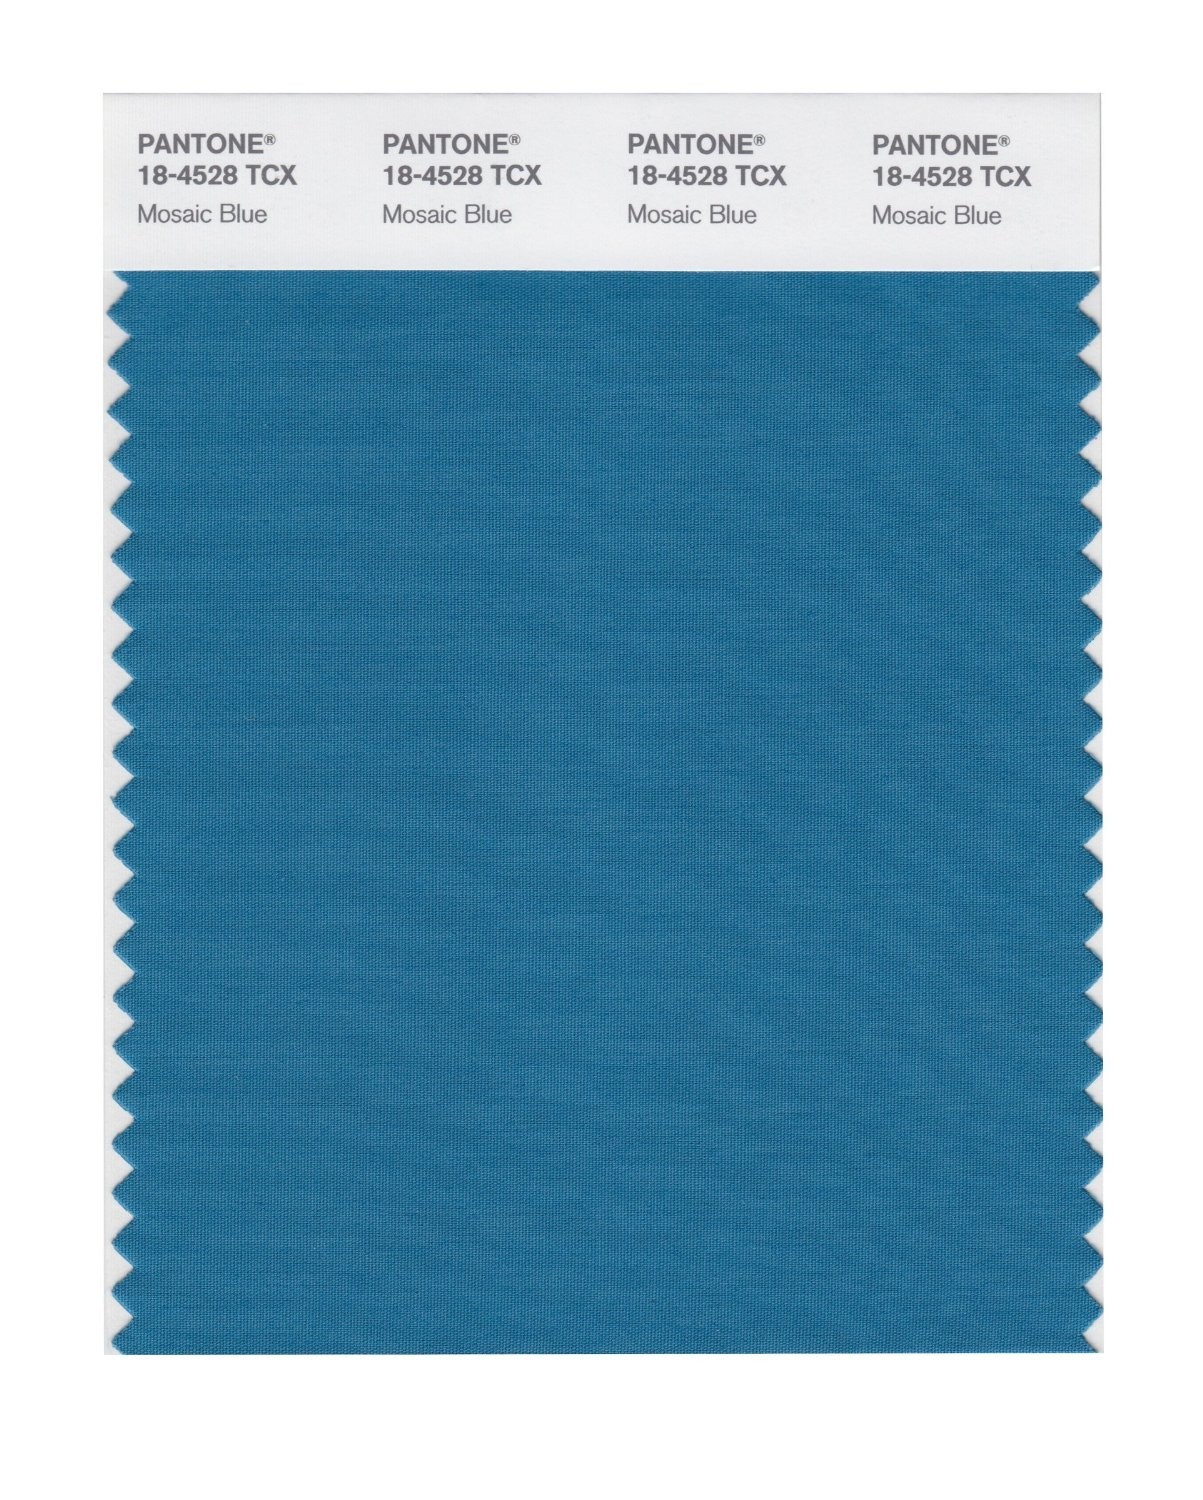 Pantone 18-4528 TCX Swatch Card Mosaic Blue